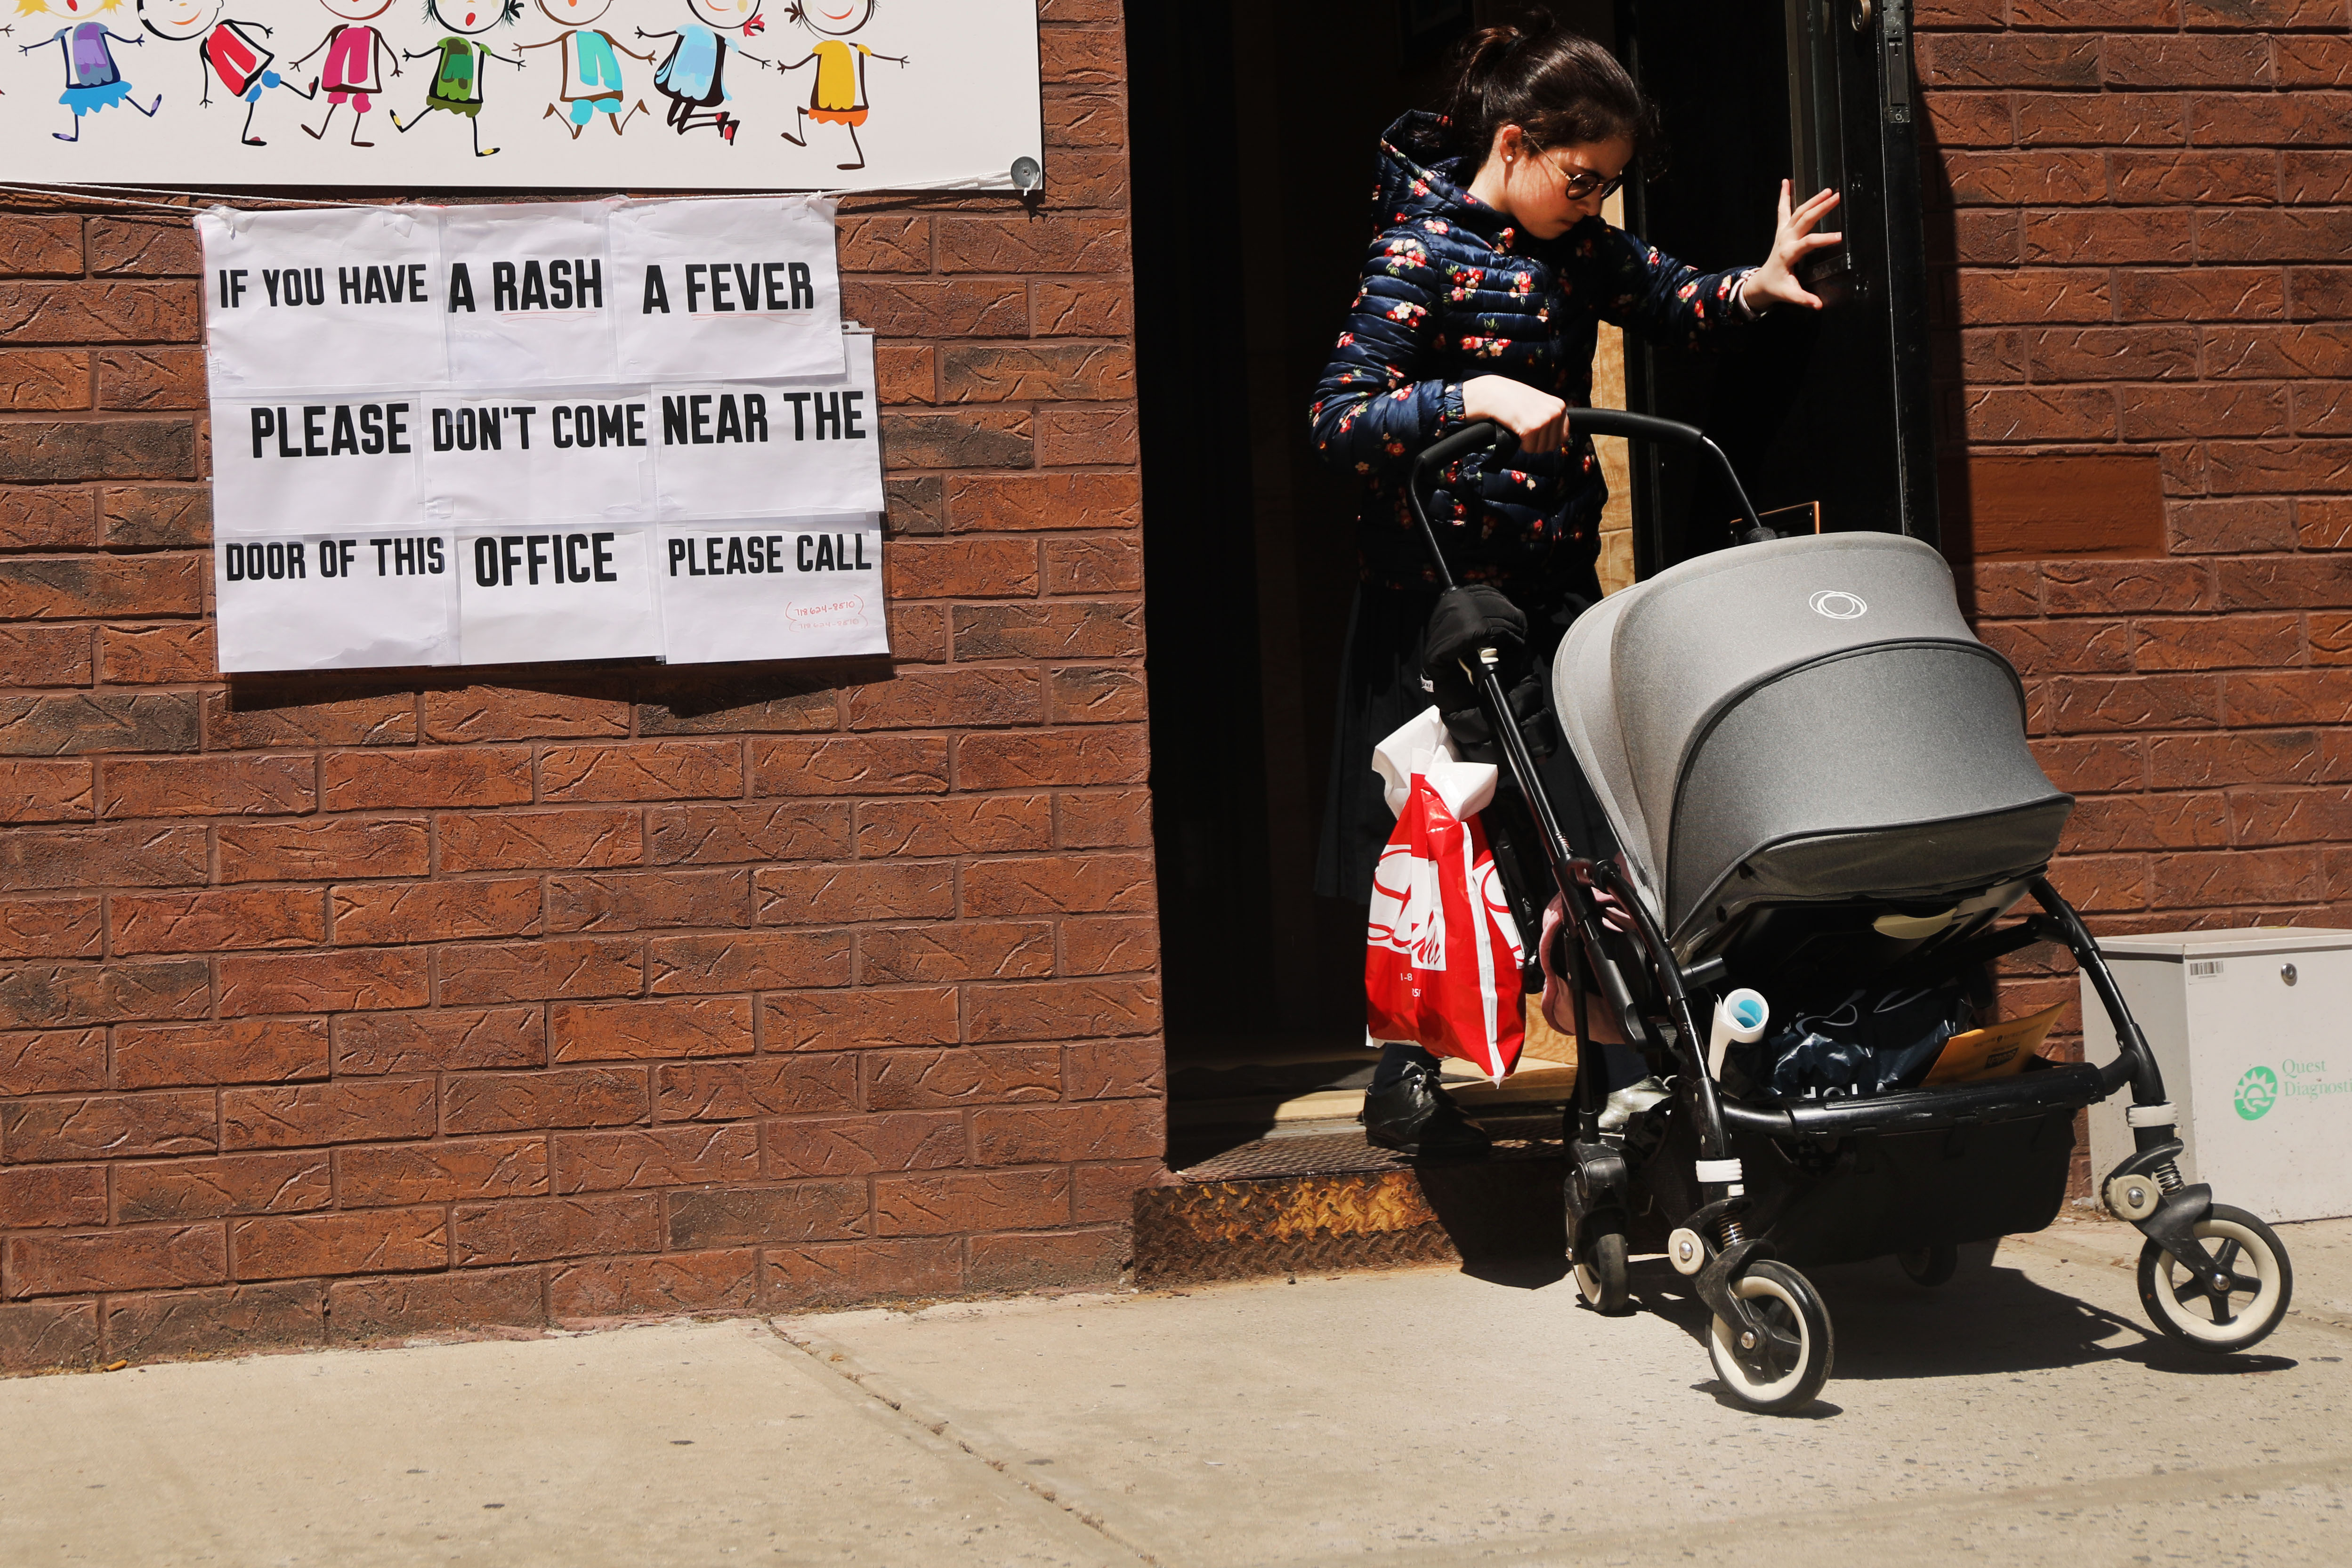 A sign warns people of measles in the ultra-Orthodox Jewish community in Williamsburg on April 10, 2019 in New York City. As a measles epidemic continues to spread, New York City Mayor Bill de Blasio recently announced a state of emergency and mandated residents of the ultra-Orthodox Jewish community in Williamsburg at the center of the outbreak to get vaccinated for the viral disease. Those who choose not to will risk a $1,000 fine. (Photo by Spencer Platt/Getty Images)